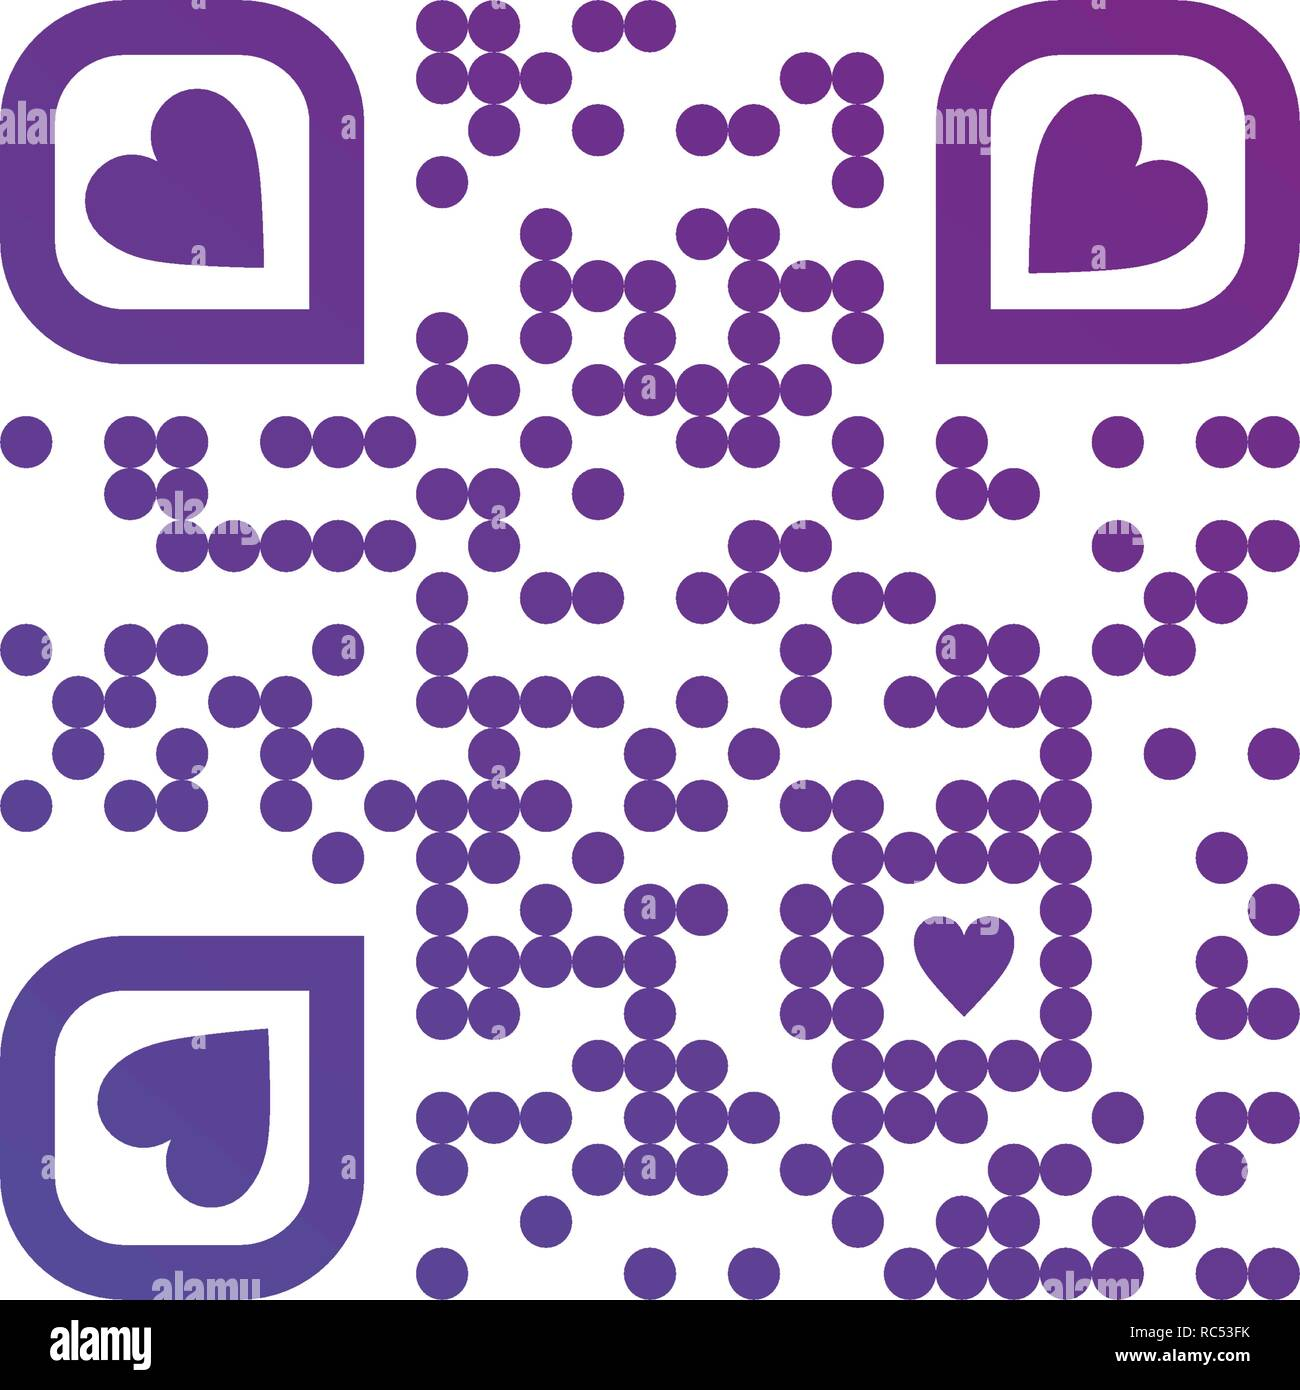 Vector illustration of I LOVE YOU QR code in purple color